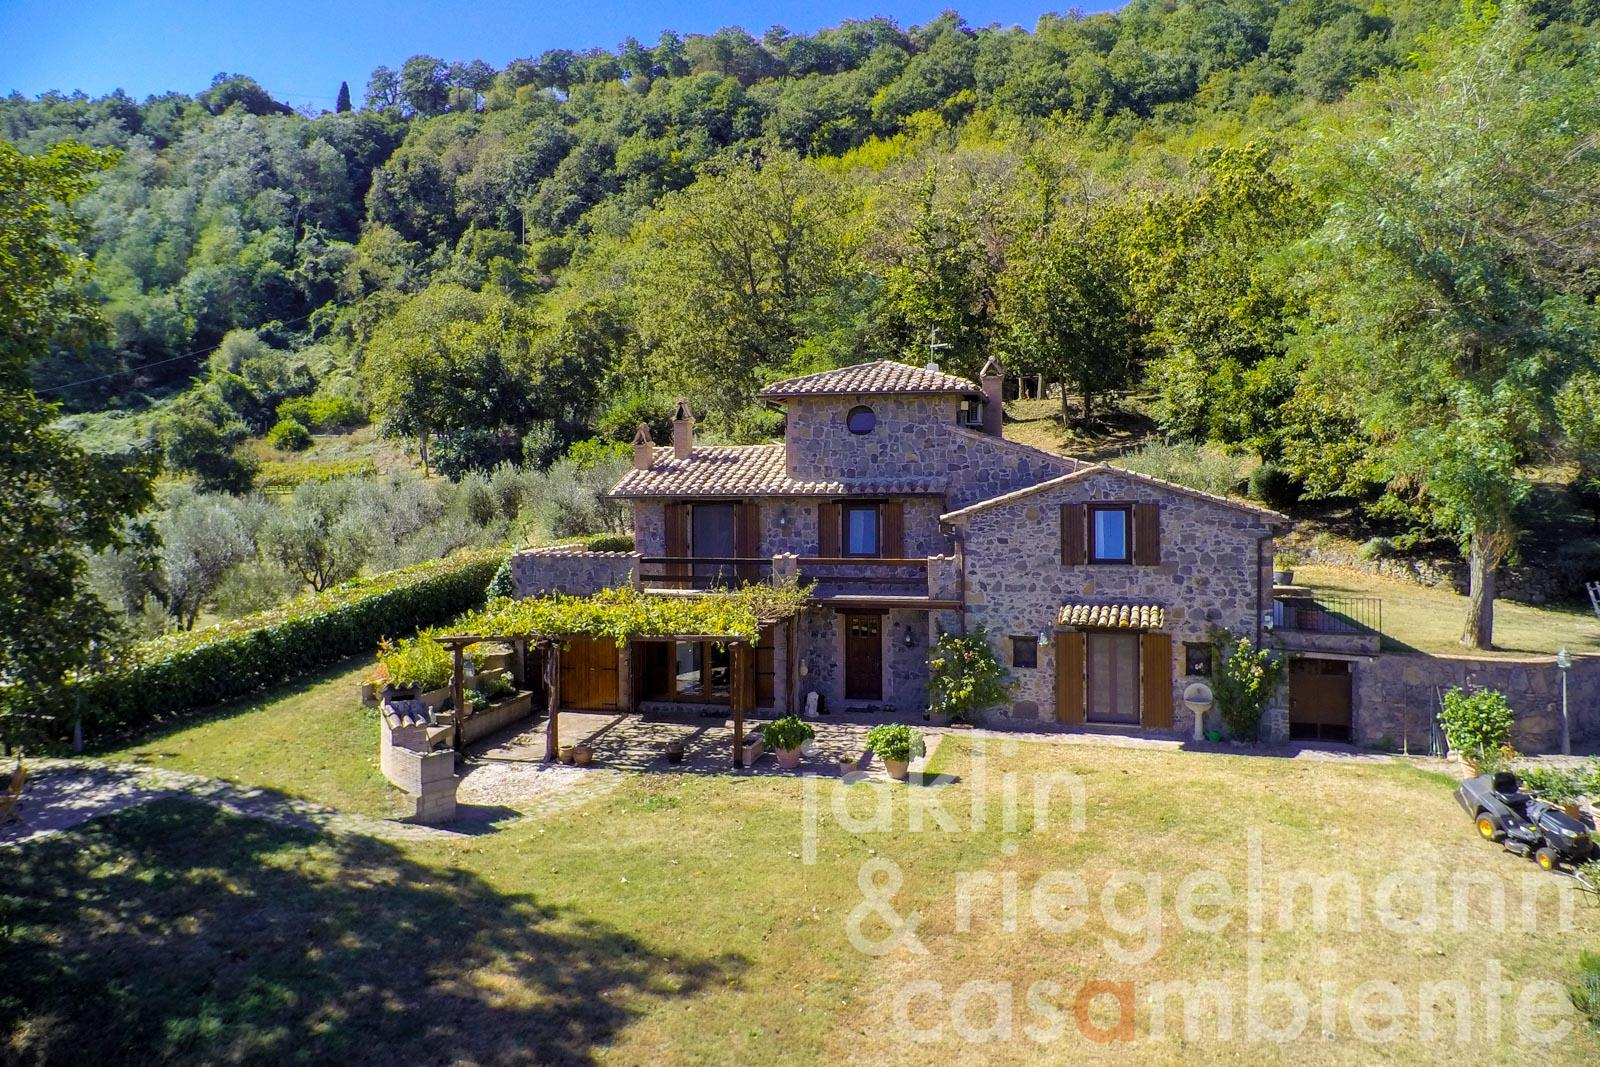 The country house for sale close to Orvieto in Umbria with pool, olive groves, vineyard, and small wine production